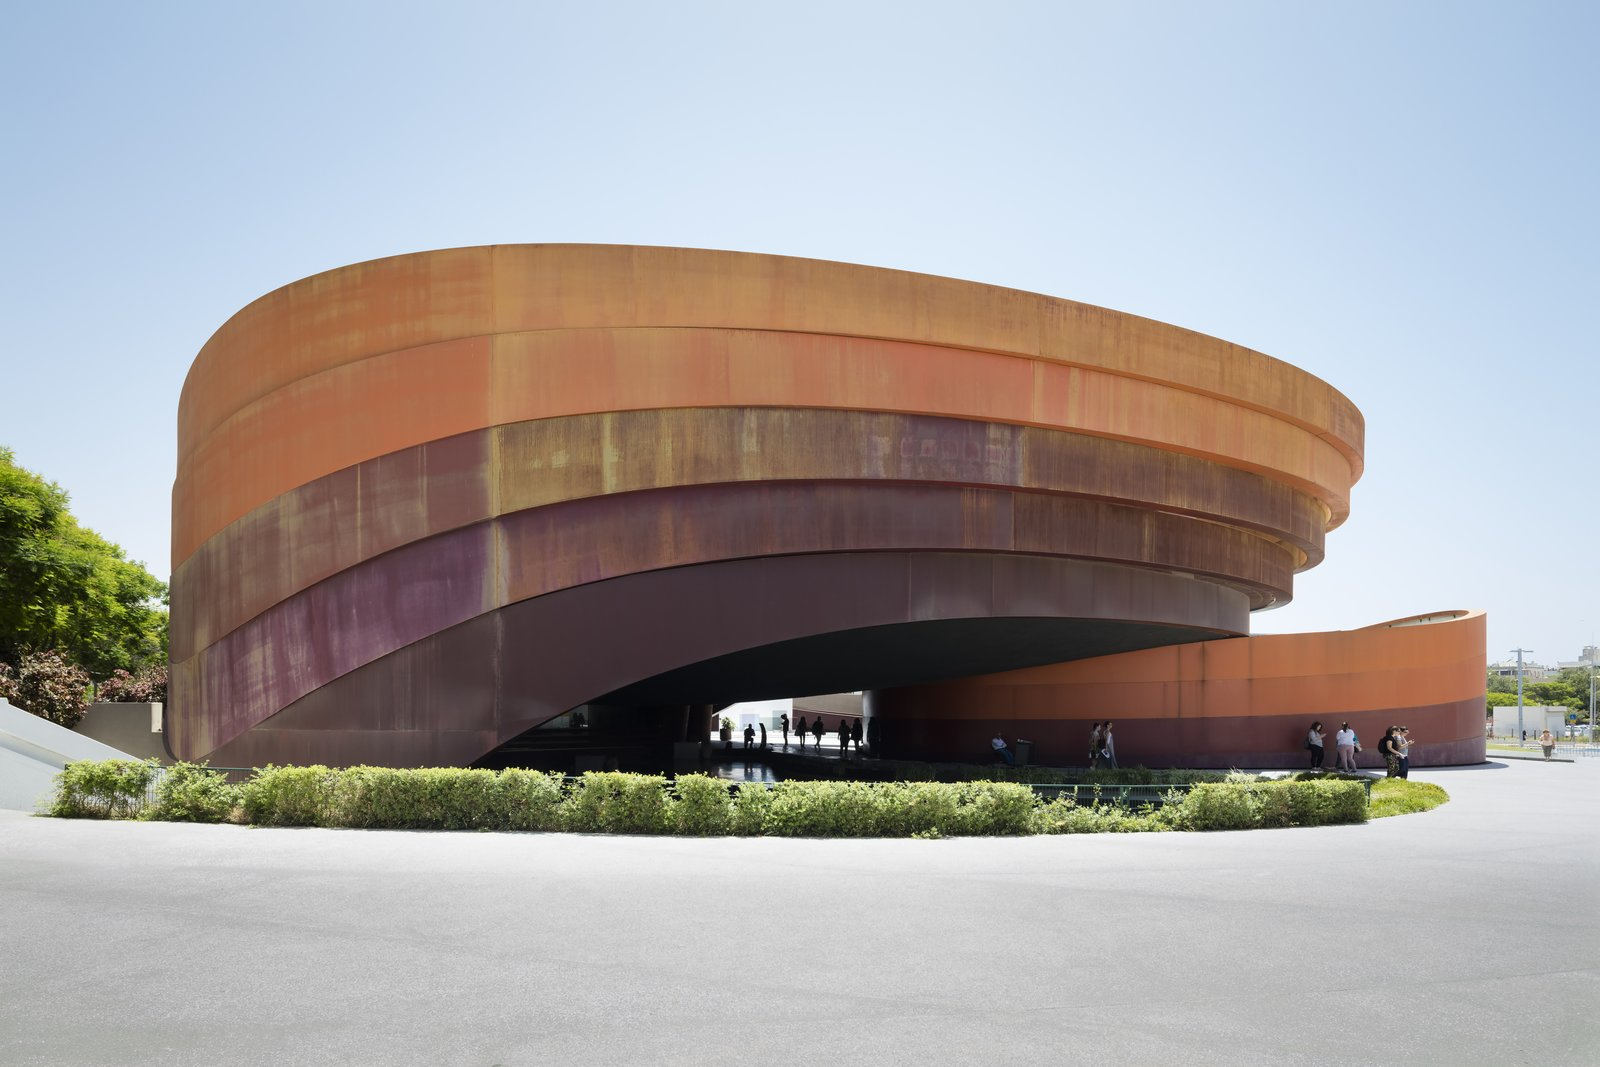 Design Museum Holon, Israel's national design museum, hosts a retrospective exhibition of Japanese studio Nendo, on view through October 29, 2016. The museum, designed by Ron Arad Architects, features five curved bands of Cor-Ten steel that frame a central courtyard space, a fitting backdrop for the minimalist geometries found in Nendo principal Oki Sato's work.  Photo 2 of 8 in Nendo's Minimalism Meets Ron Arad's Sweeping Curves